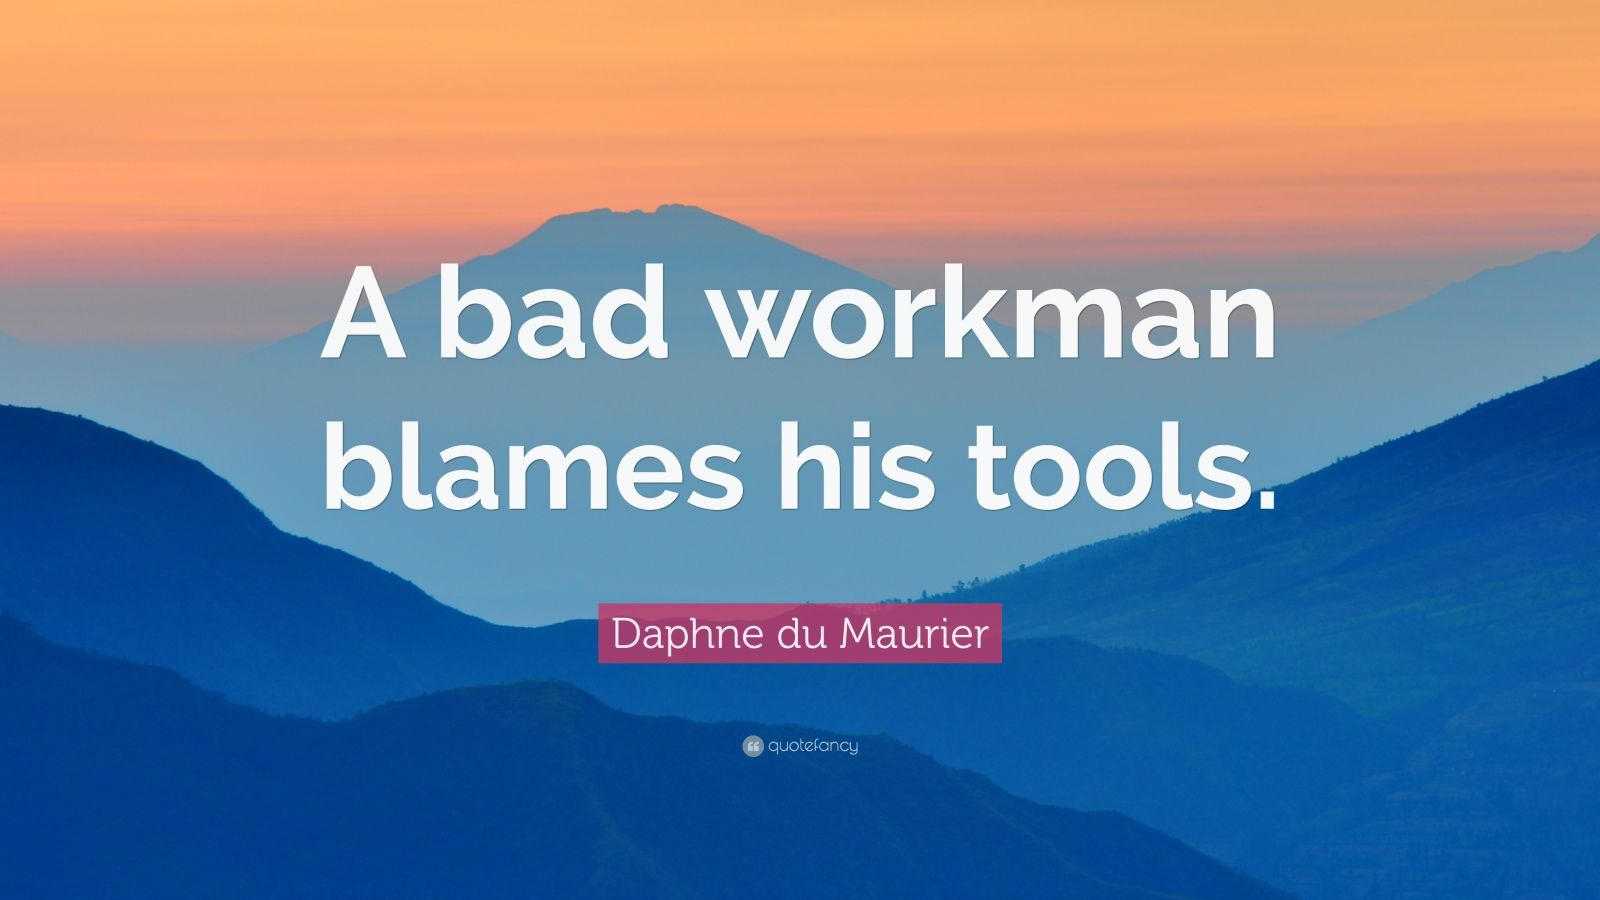 """a bad workman blames his tools """"a bad workman will never find a good tool"""" a workman and his tools (and often our partners) """"a poor workman blames his tools."""